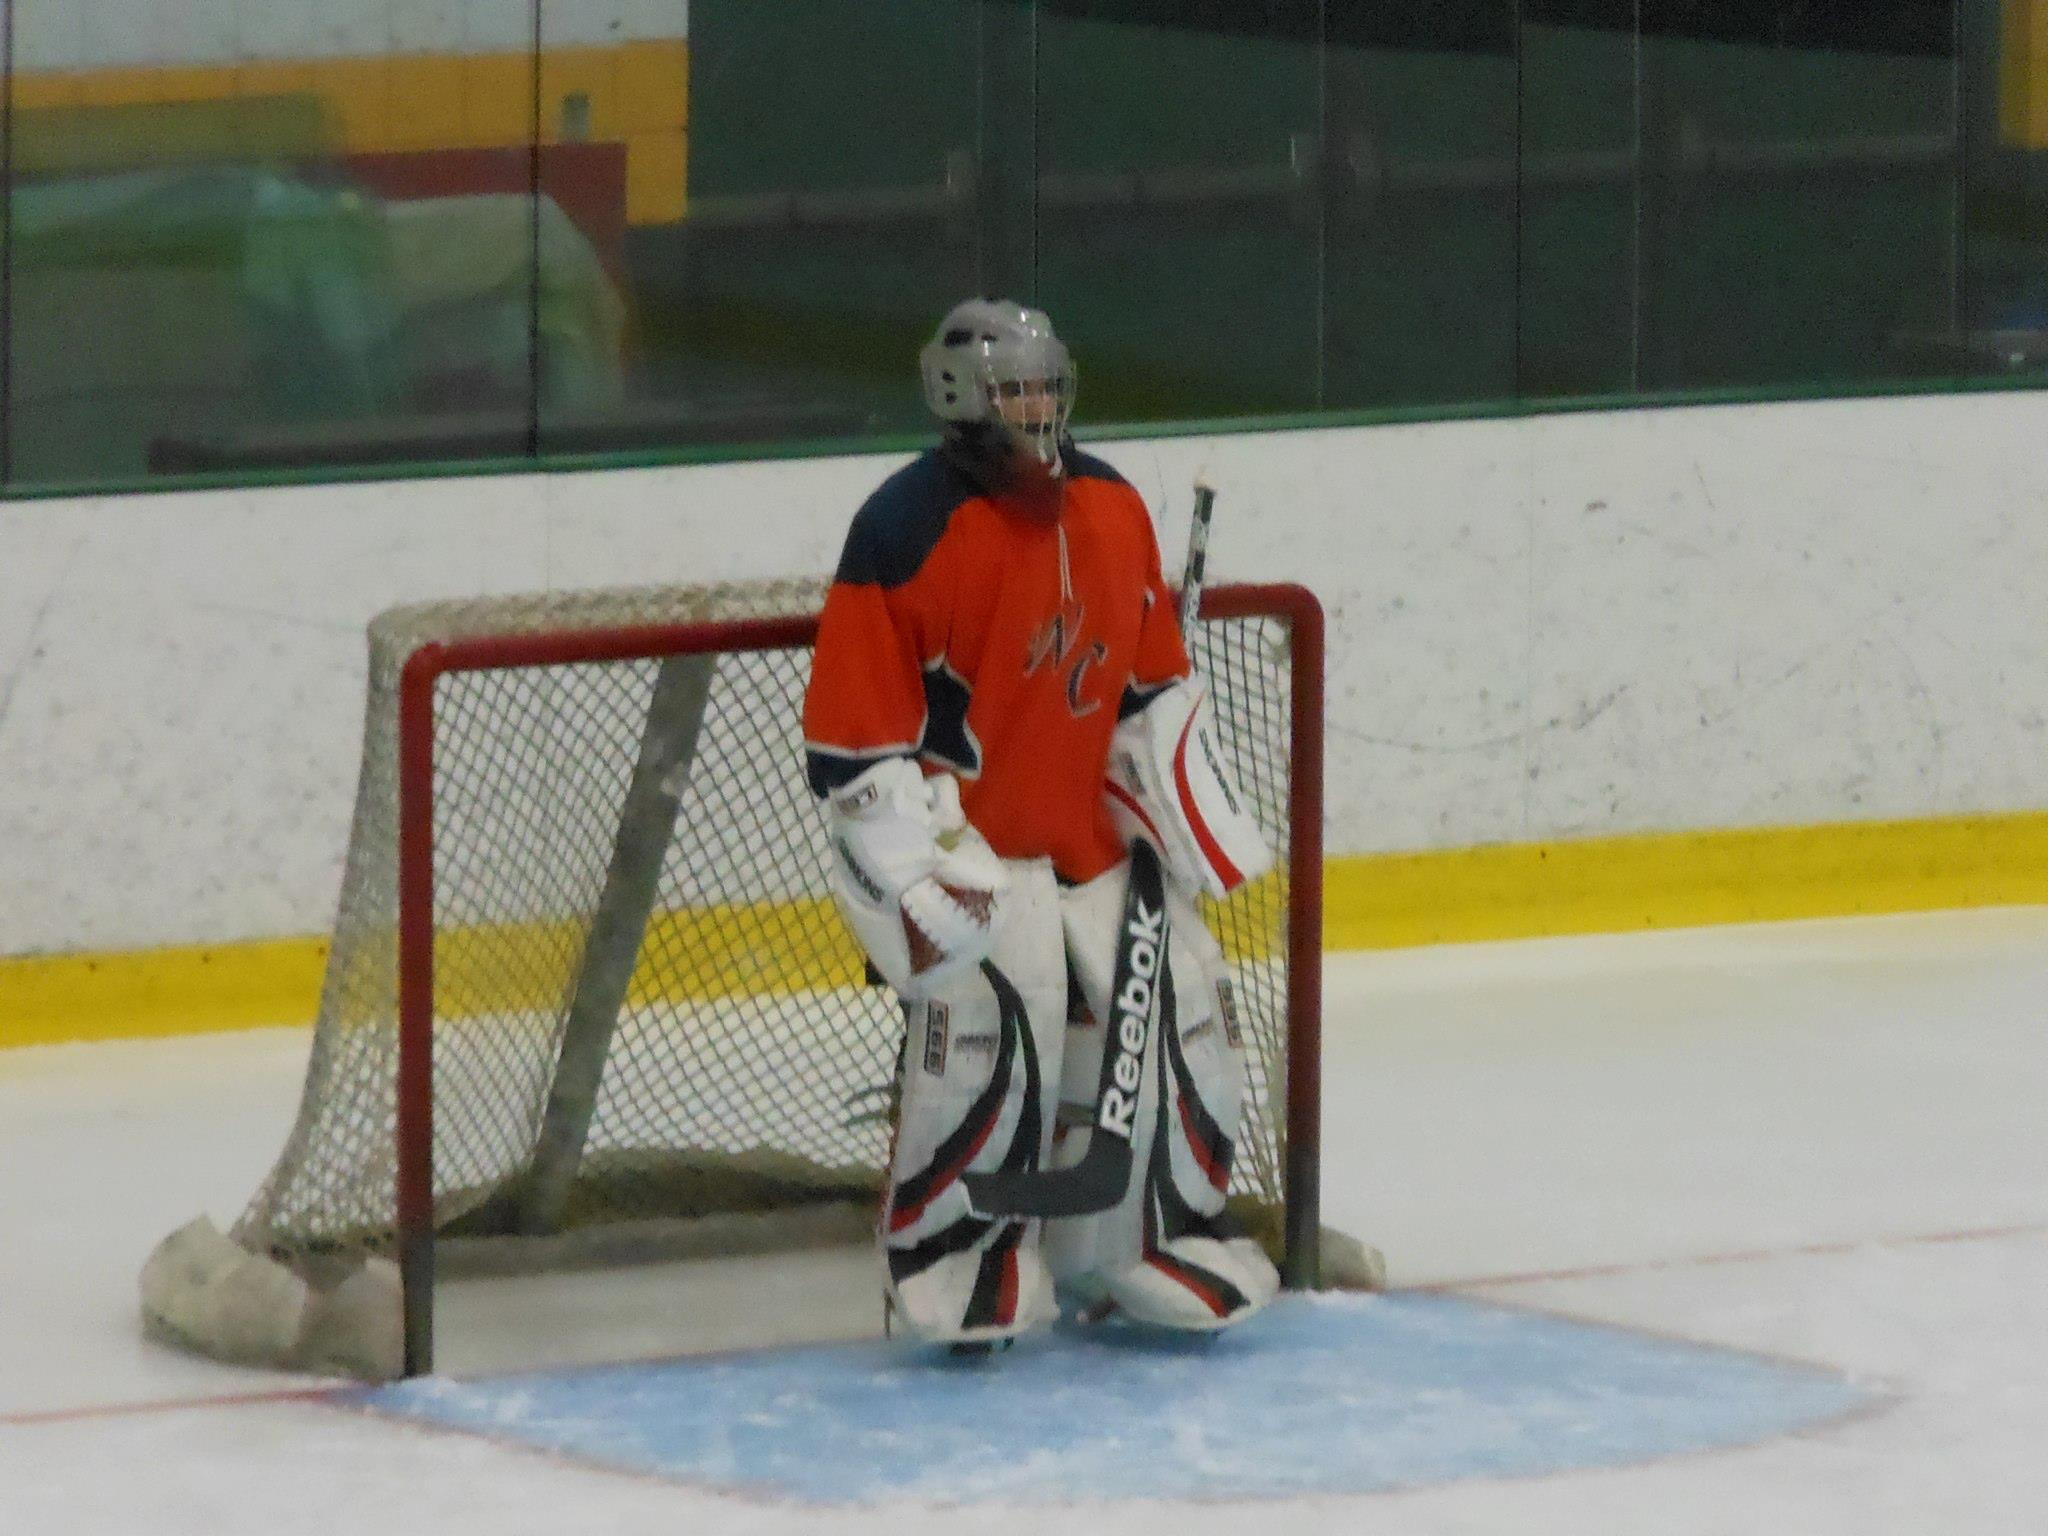 Evan_Is_A_Goalie